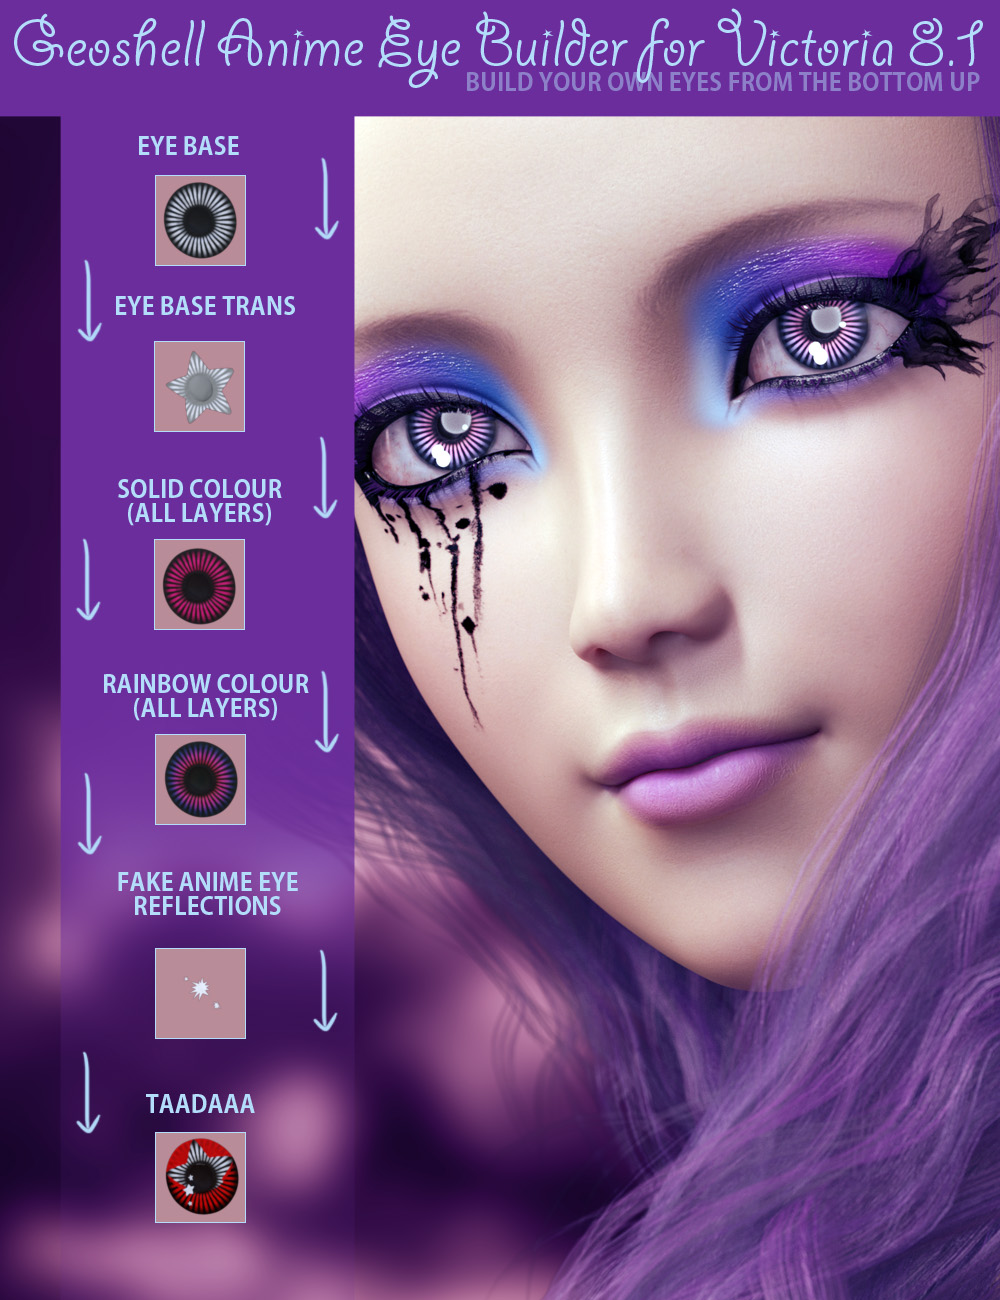 Geoshell Anime Eye Builder for Victoria 8.1 by: ForbiddenWhispers, 3D Models by Daz 3D